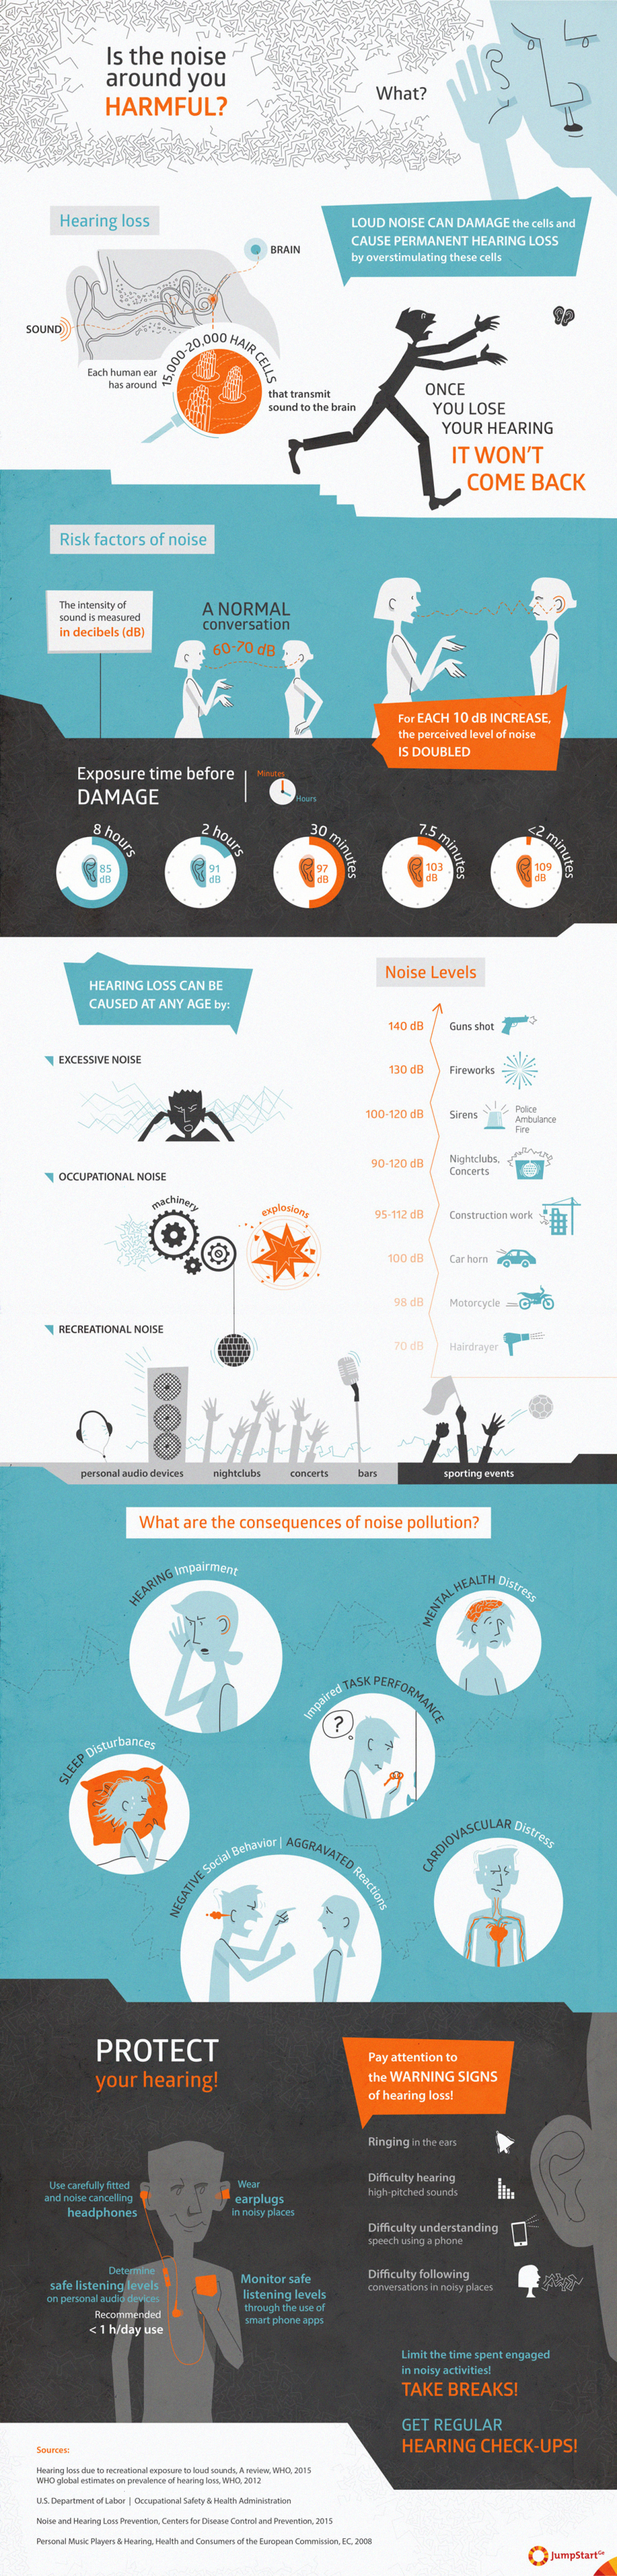 Is the noise around you harmful? Infographic